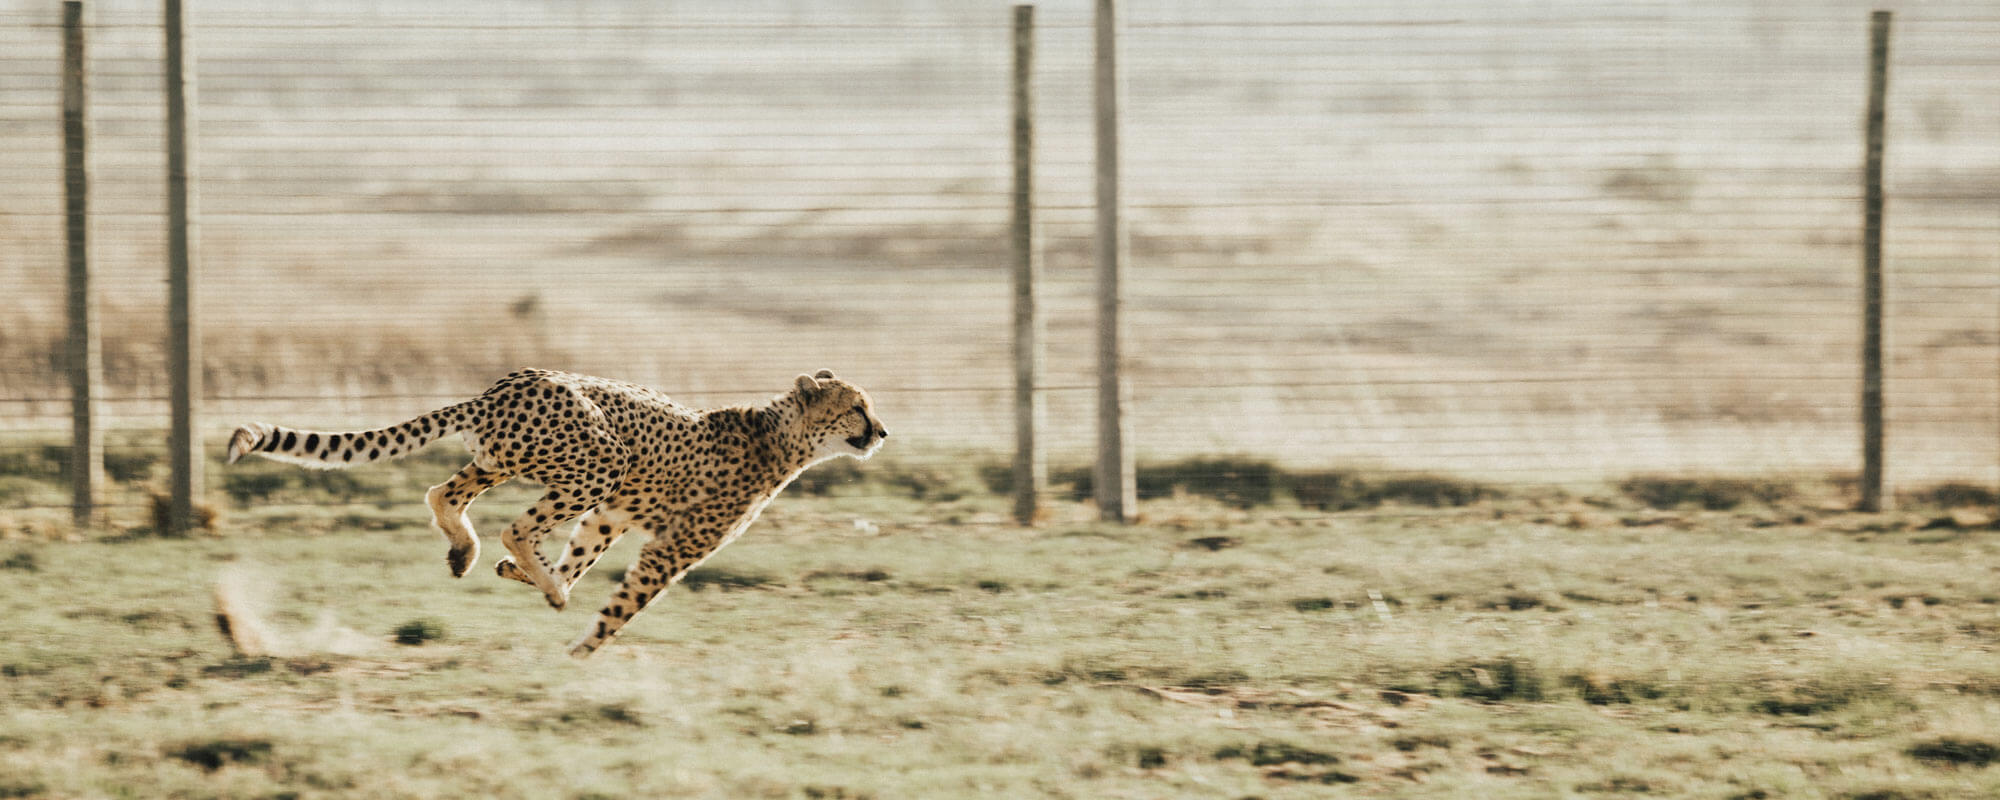 Aspects Of Fluid Movement -  A Cheetah Runs